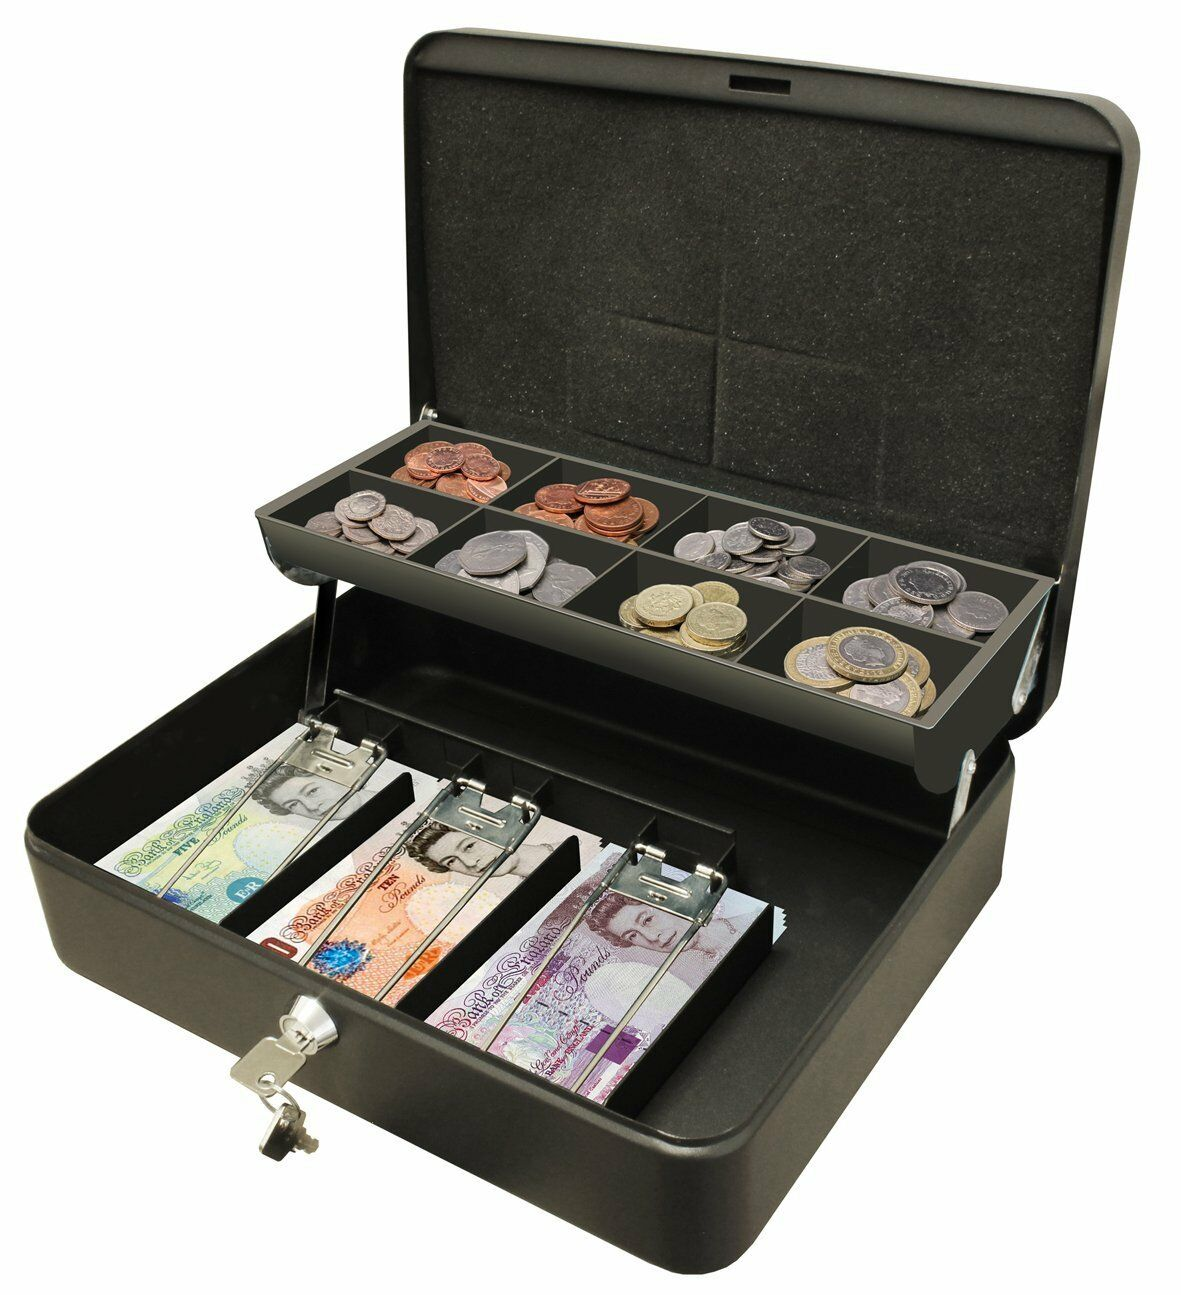 Buy Money Box 12 Quot Petty Cash Box Black Metal Security Money Safe Tray